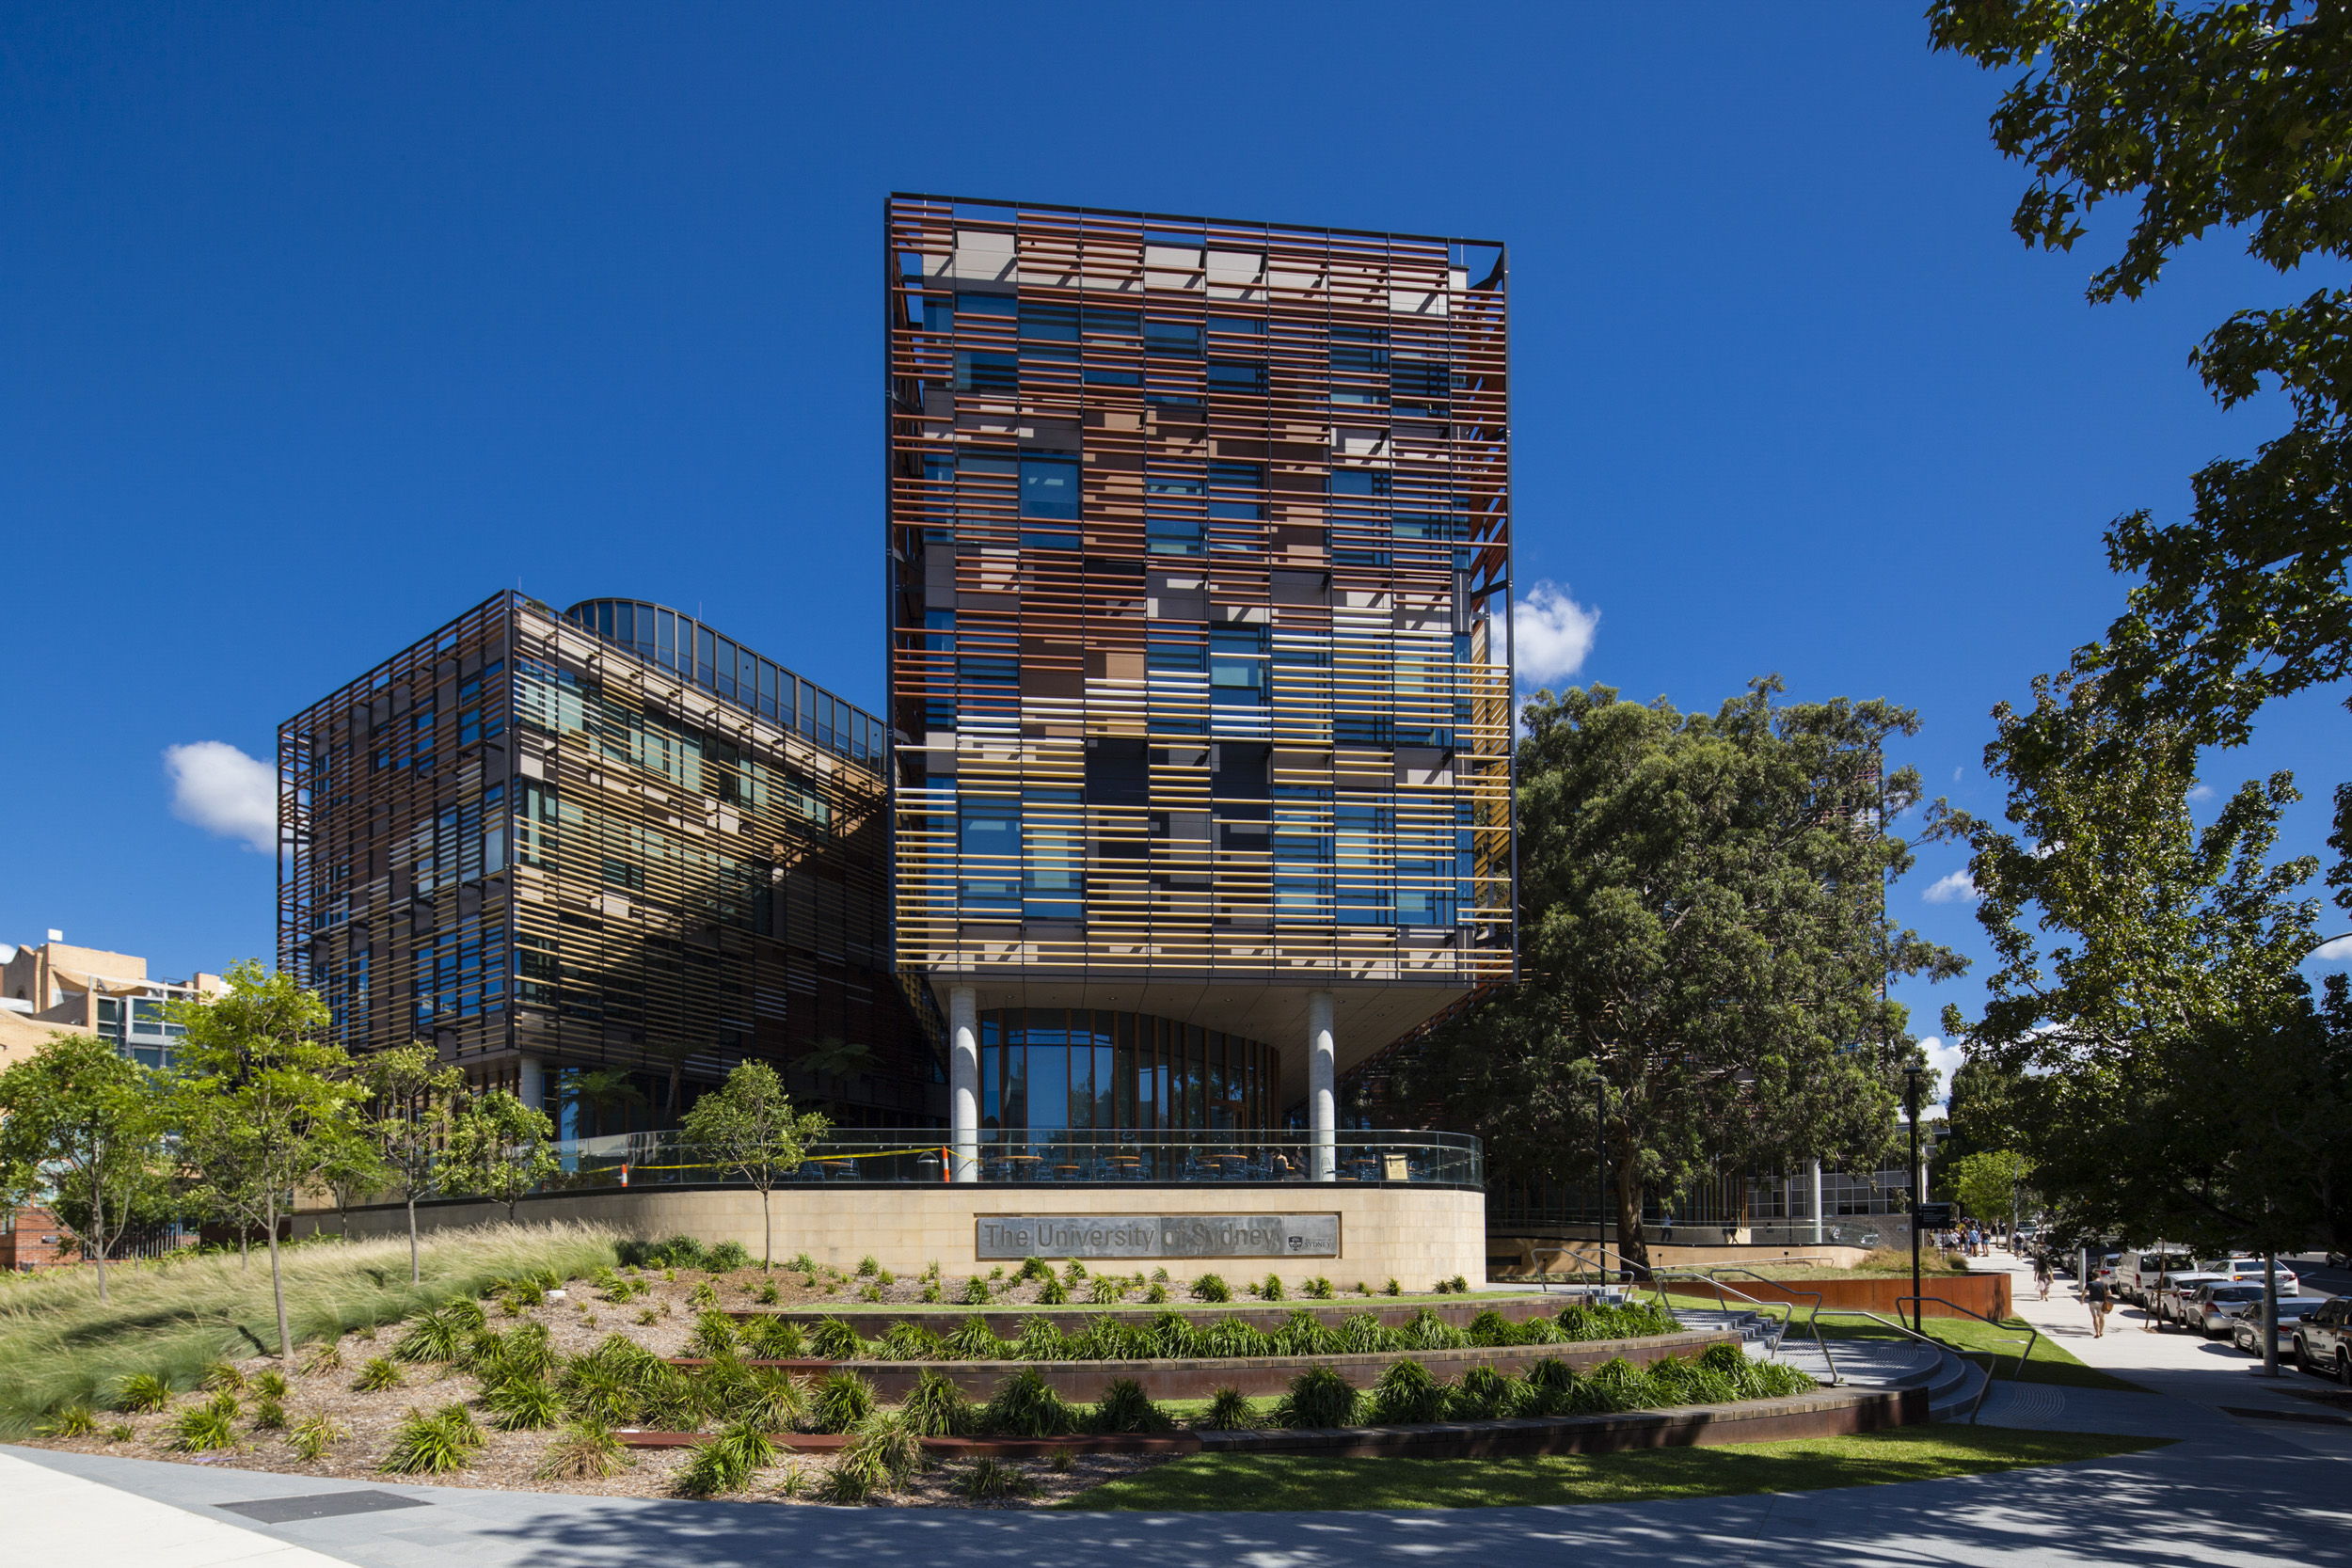 Sydney University Business School